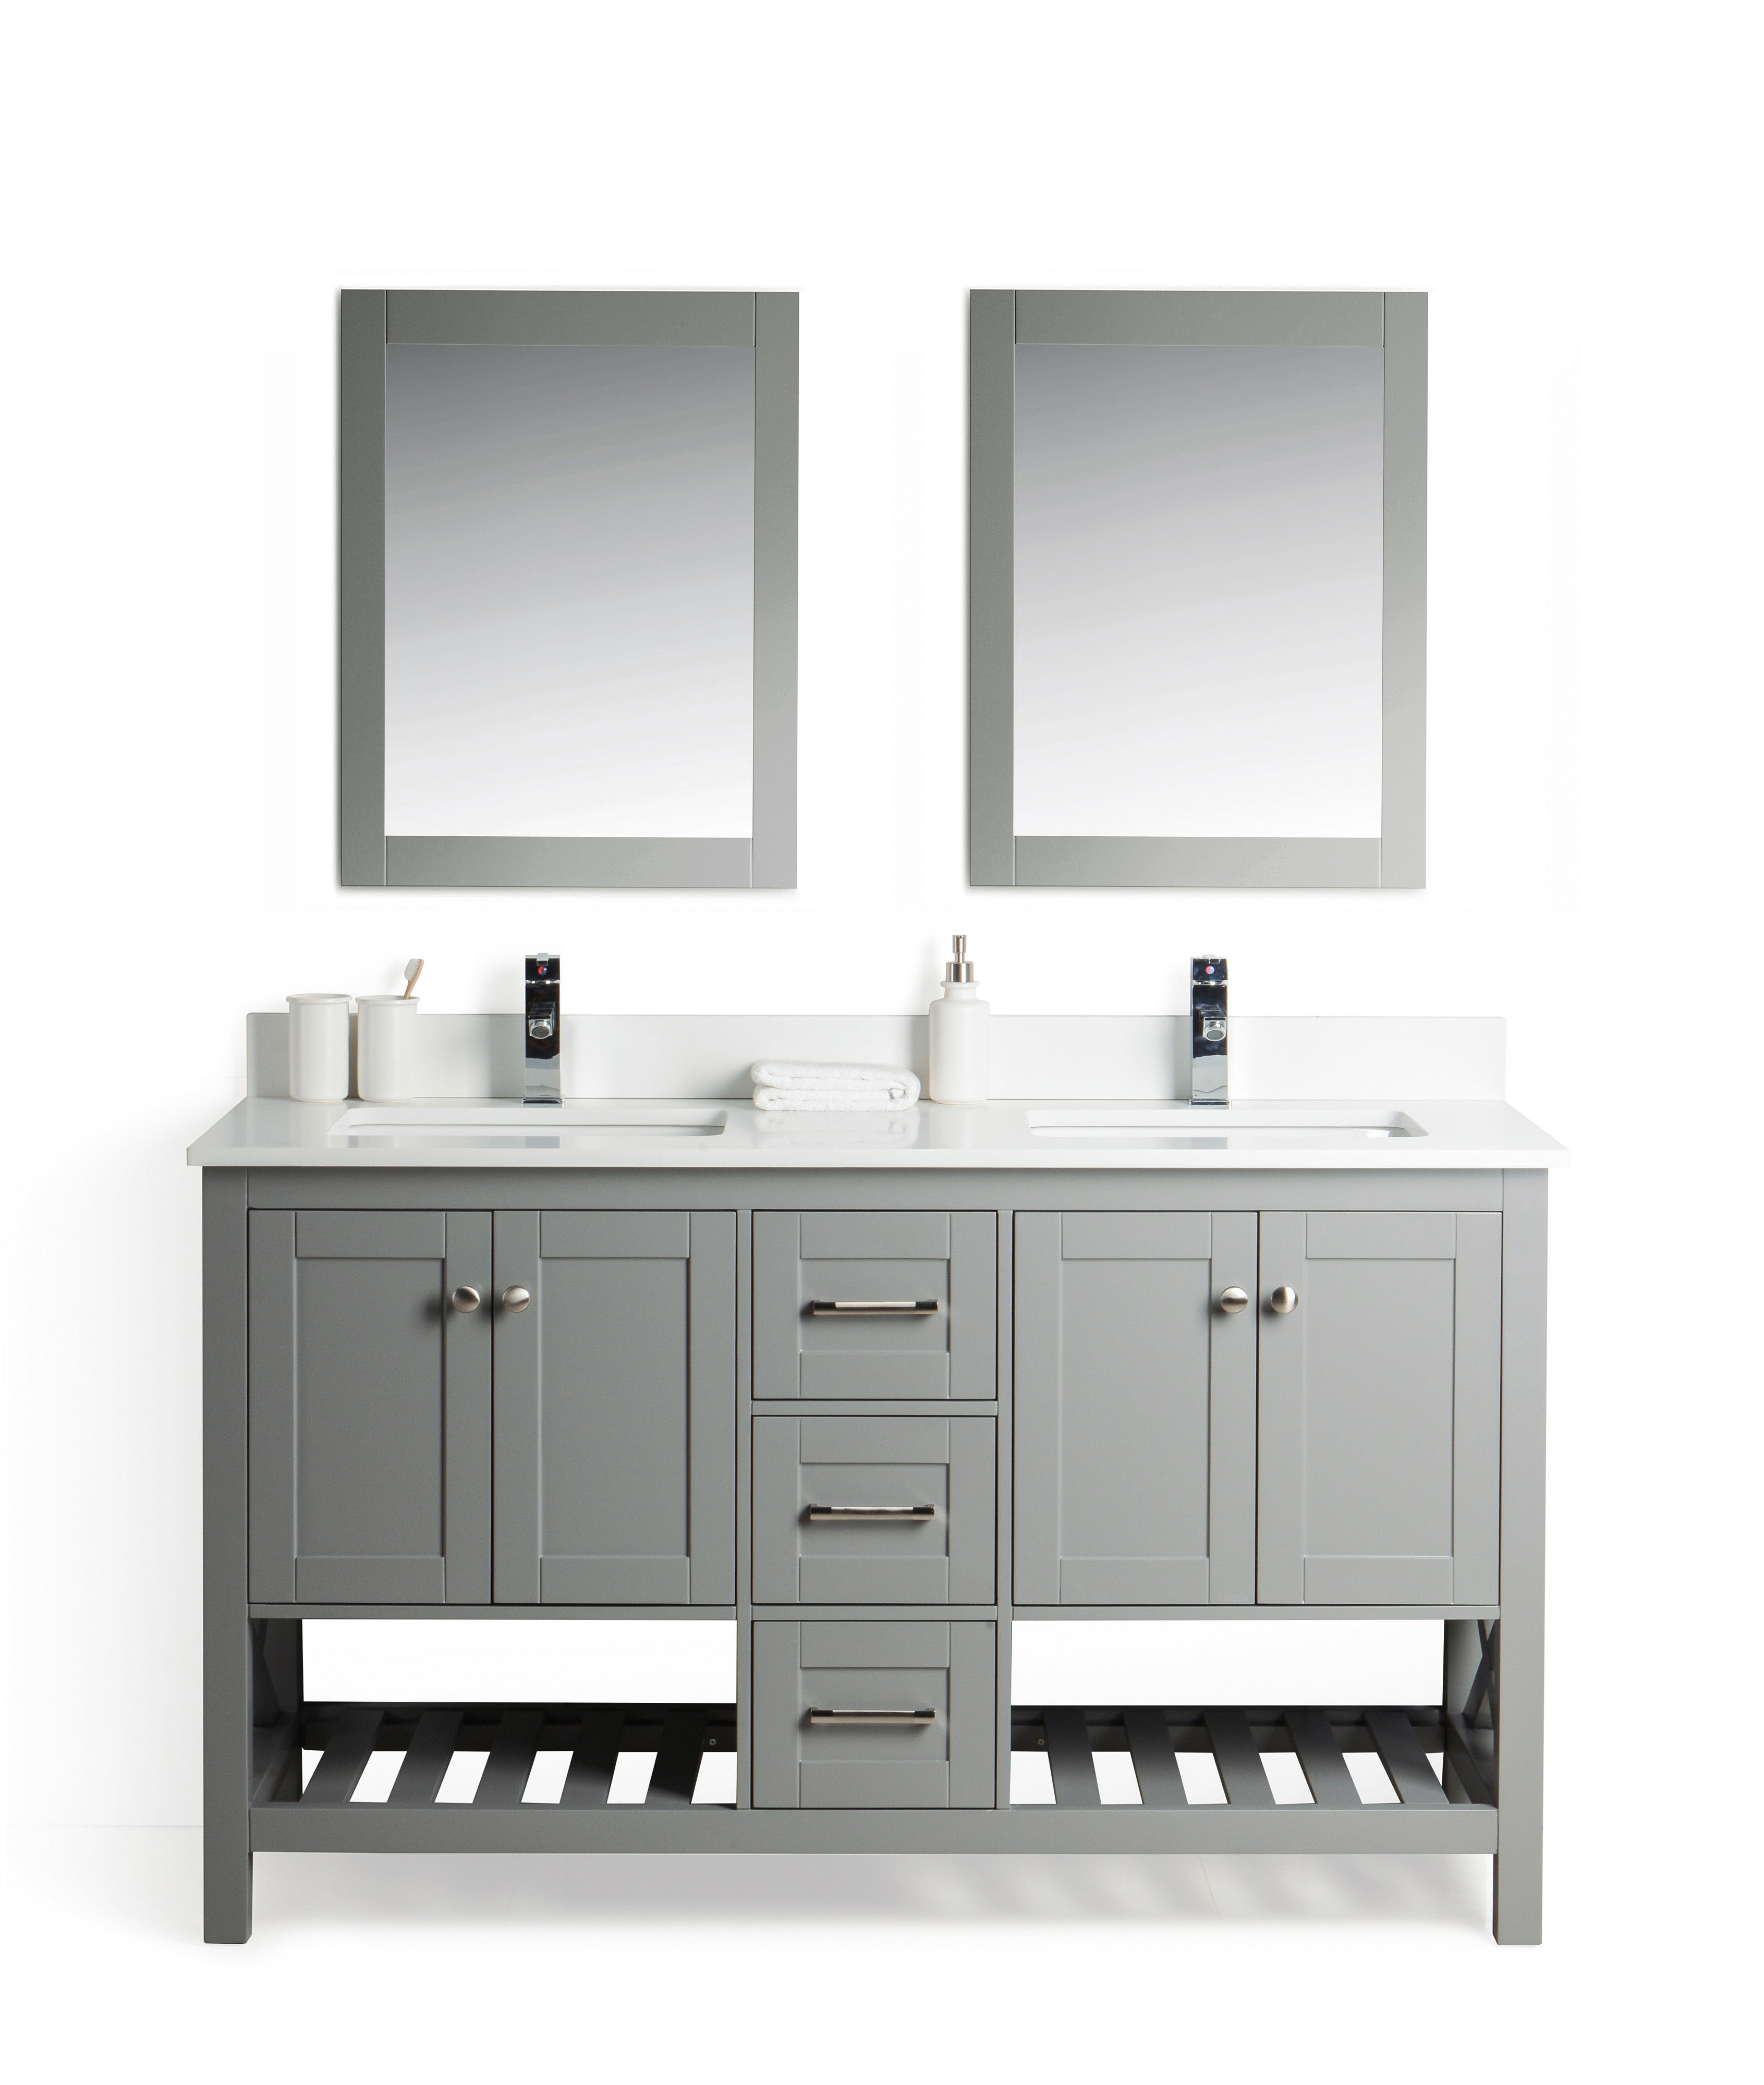 Taiya Bathroom Vanity in Grey Rock - 60 Inch - Double Sink ...